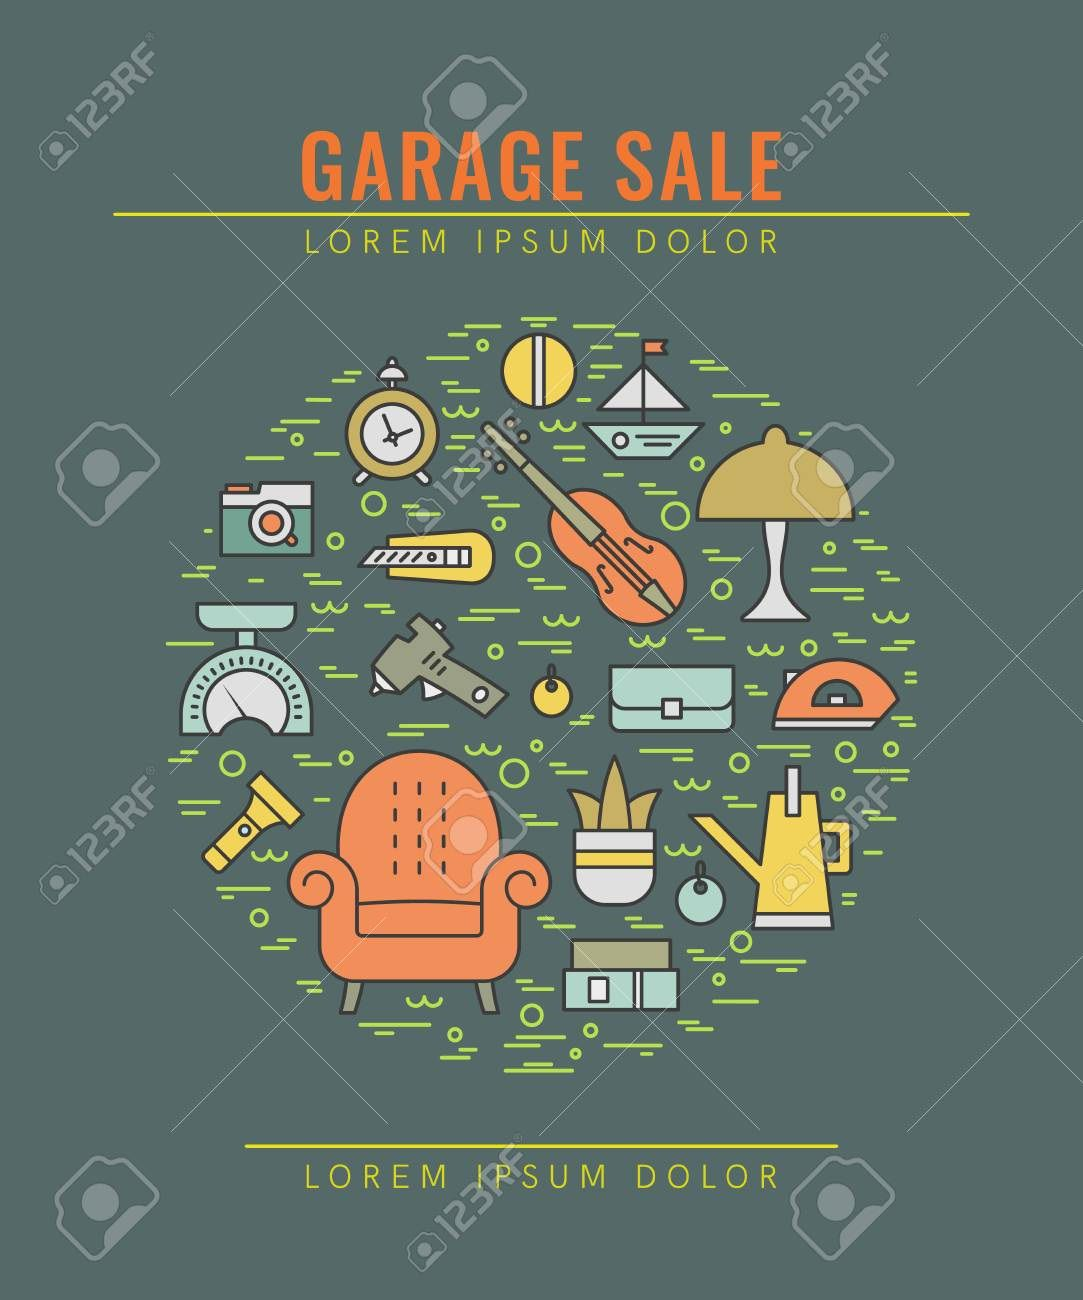 004 Exceptional Yard Sale Flyer Template Free Picture  Community GarageFull